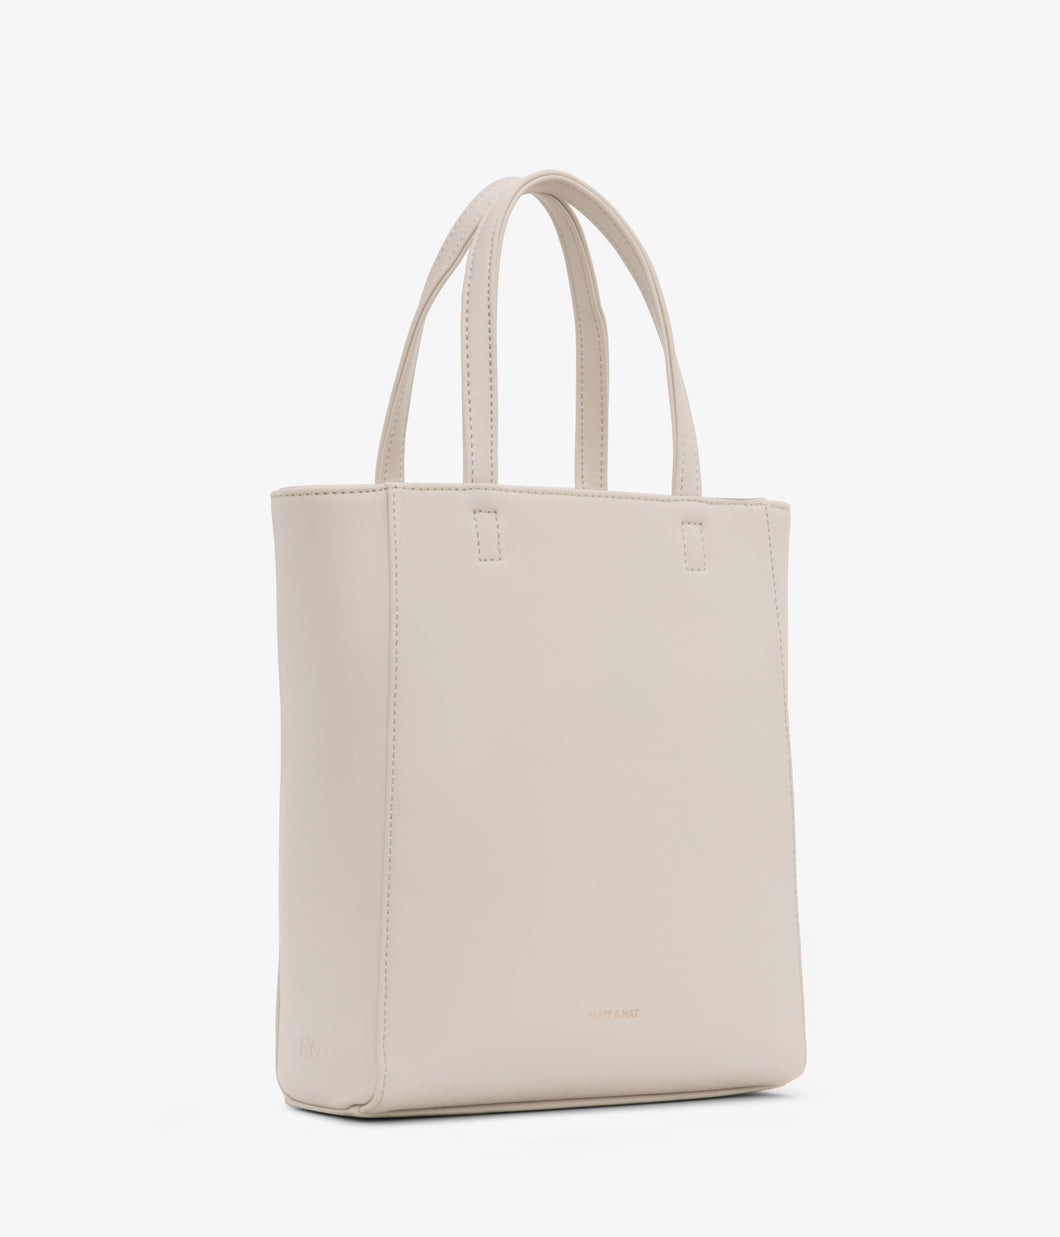 sac-a-main,sella,mat-et-nat,mat-&-nat,matt-&-nat,mattt-et-nat-couleur-pierre,couleur-stone,beige,beige-pale,vegan,cuir-vegetalian,vegane,montreal,boutique-montreal,nouvelle-collection,printemps-ete,nouvelle-collection-ete,2019,idee-cadeau-fete-des-mere,boutique-casa-luca,ahuntsic,design-montreal